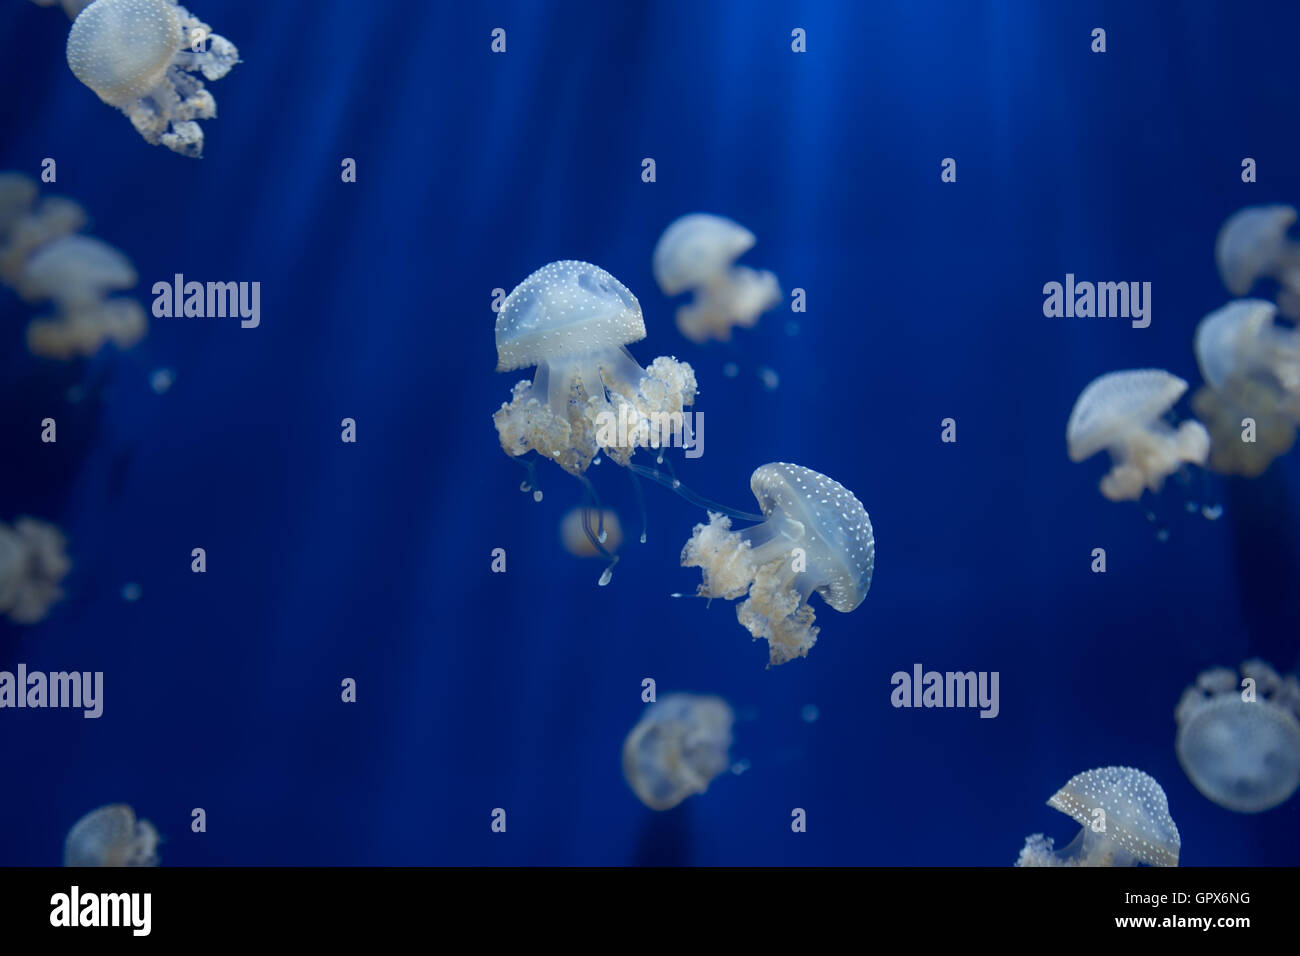 medusa jellyfish underwater diving photo egypt red sea - Stock Image